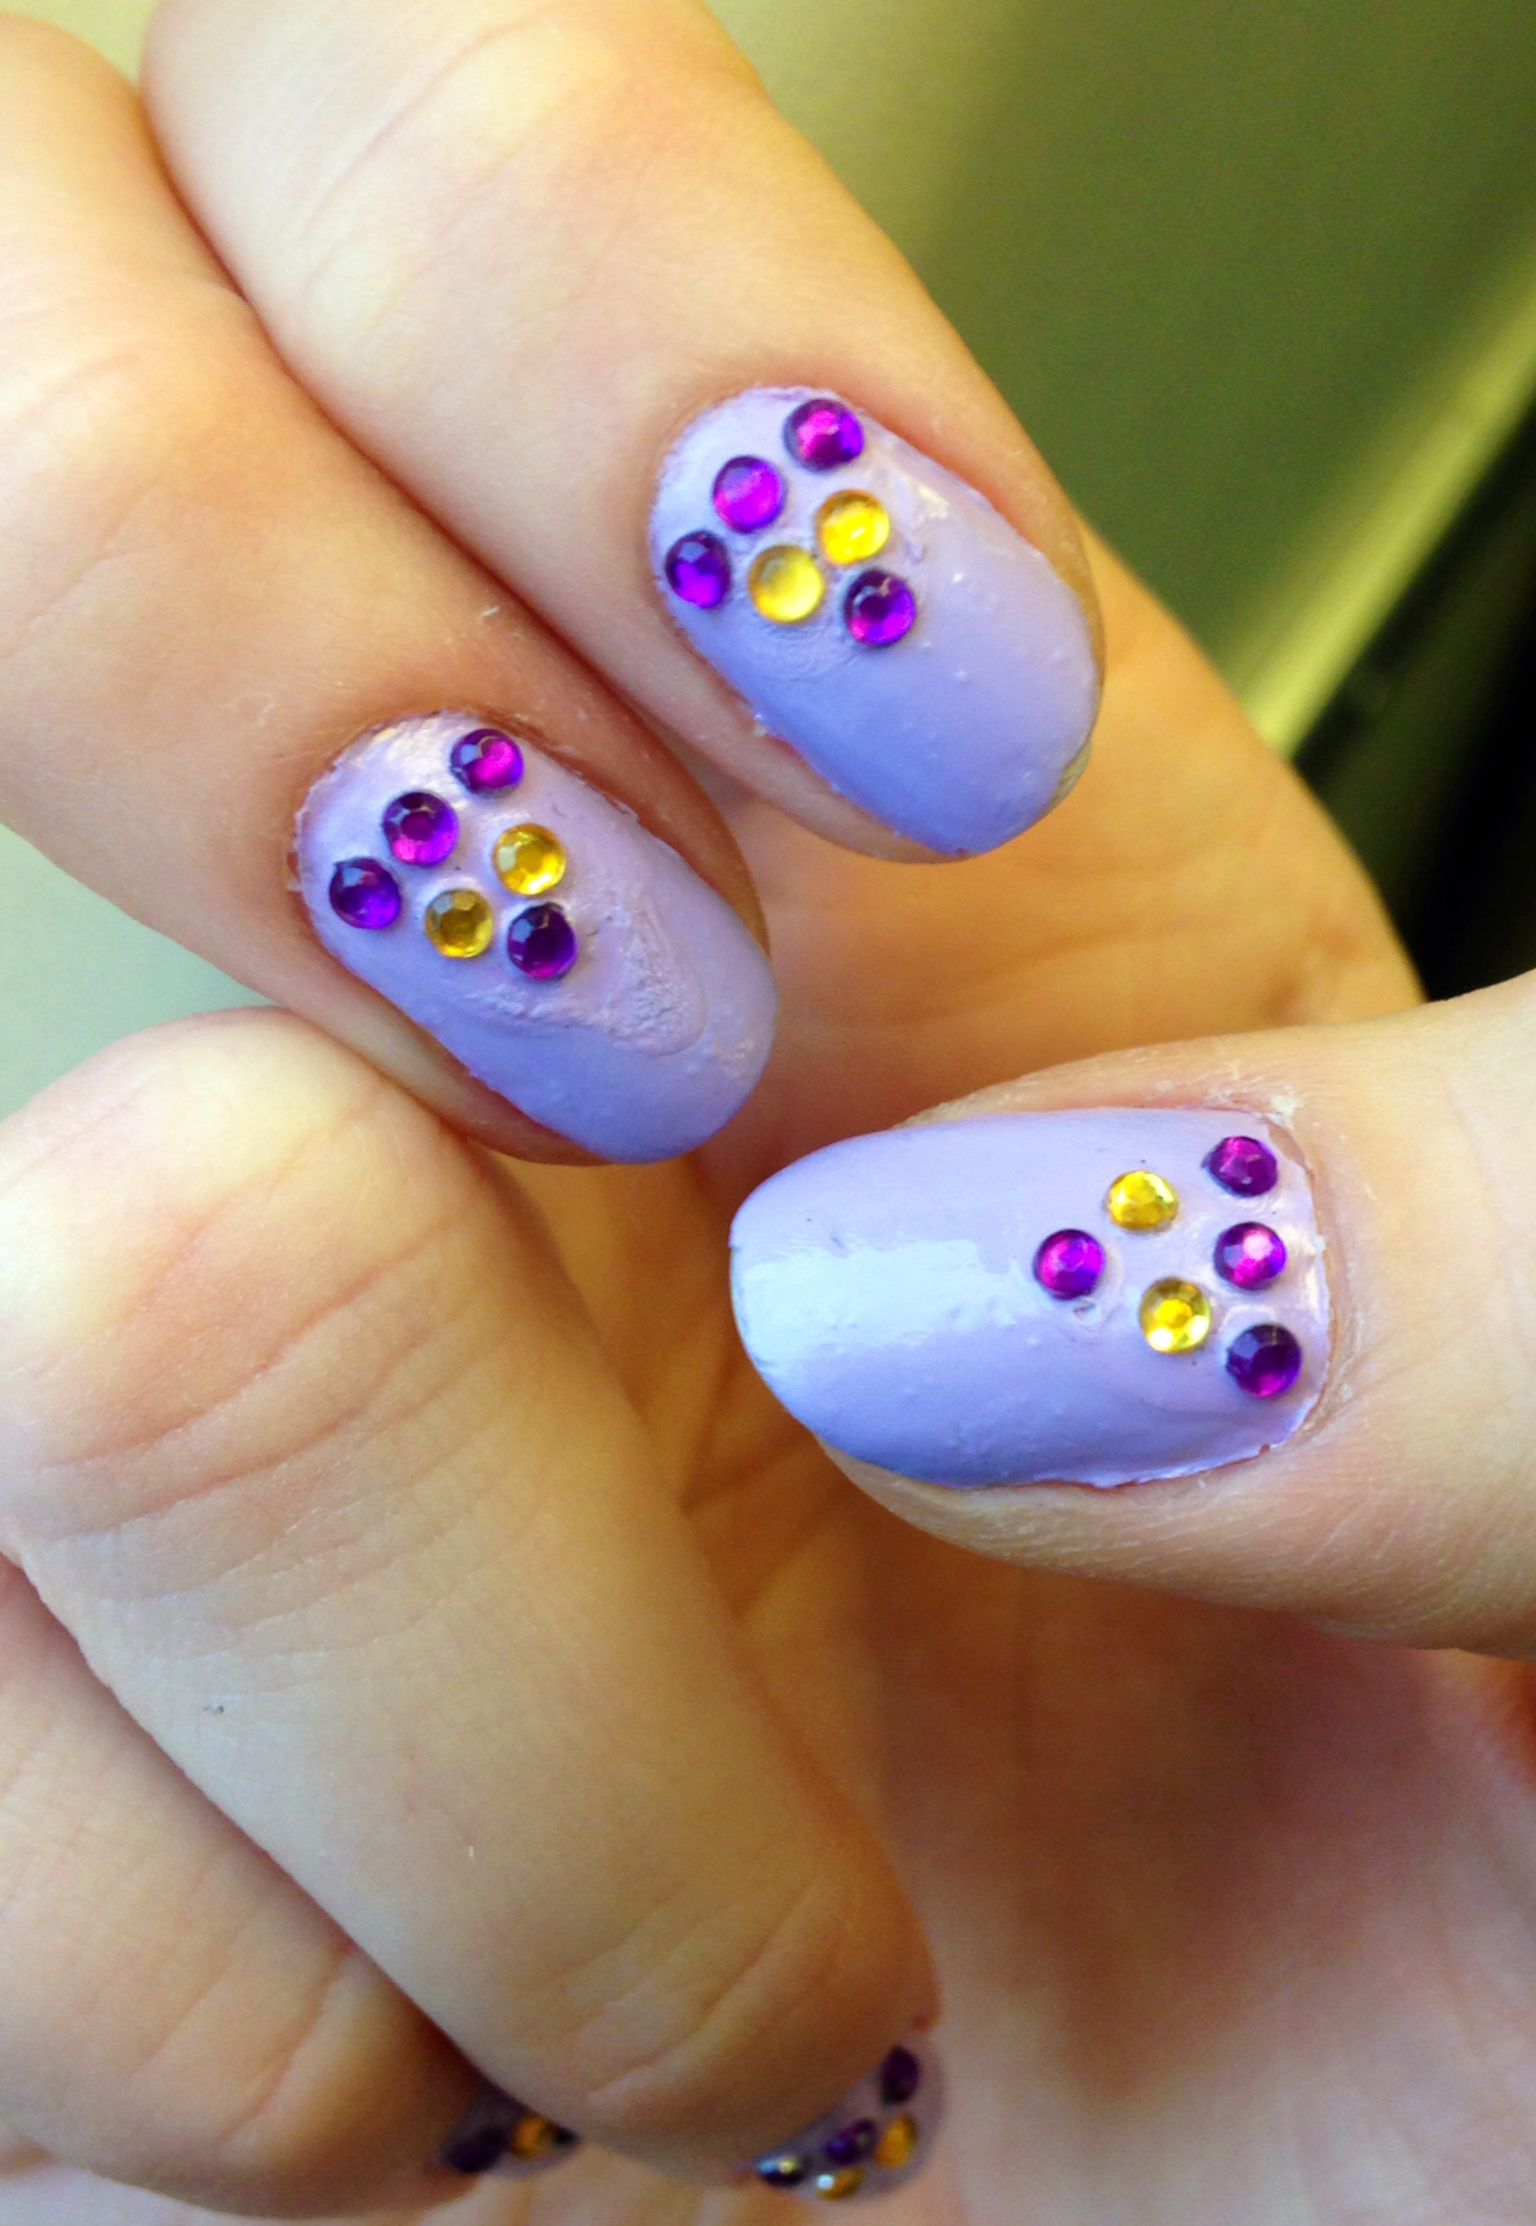 Nails This Week - Lilac & Jewels - Nails For Nickels